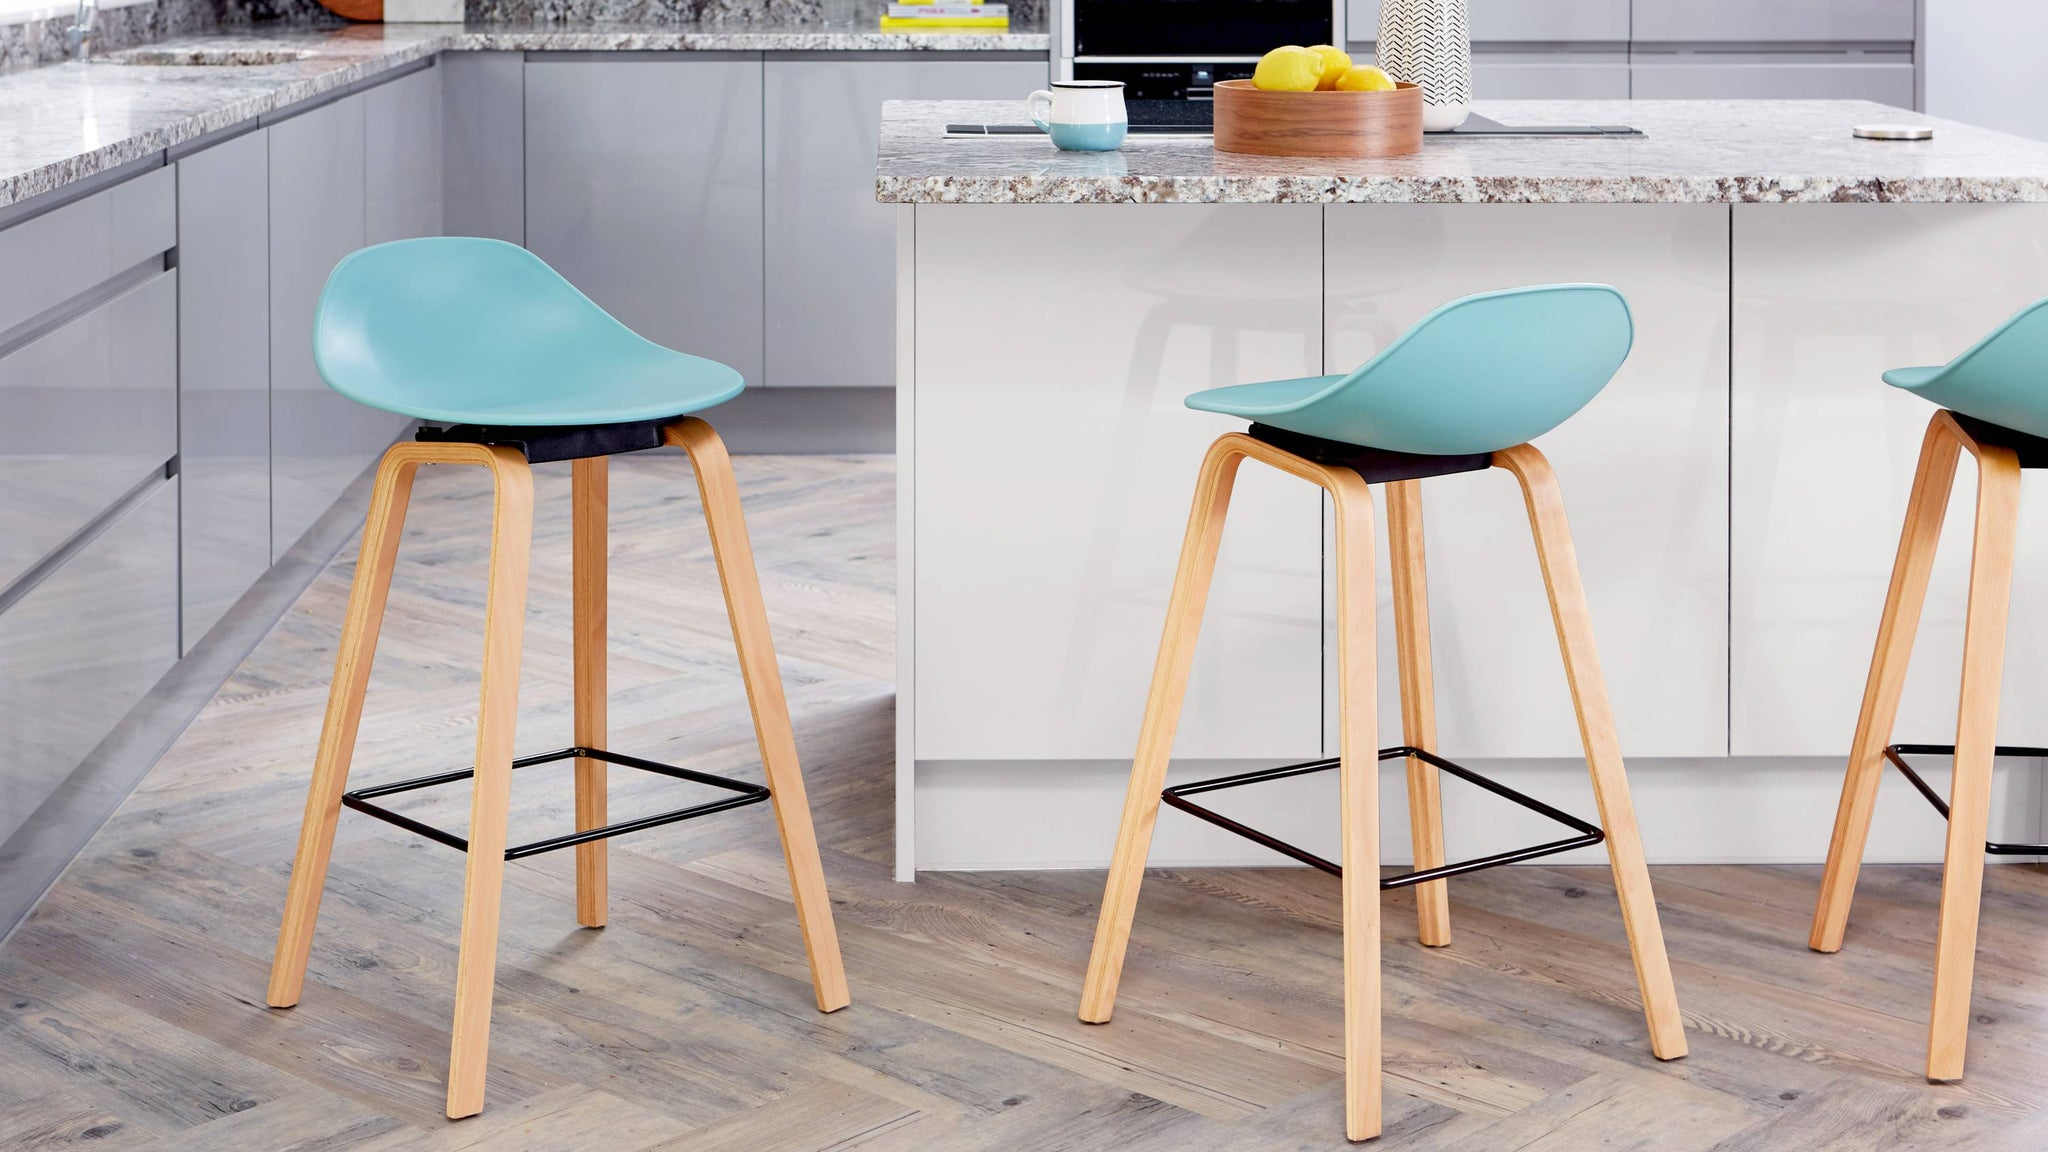 Buy colourful wooden bar stools